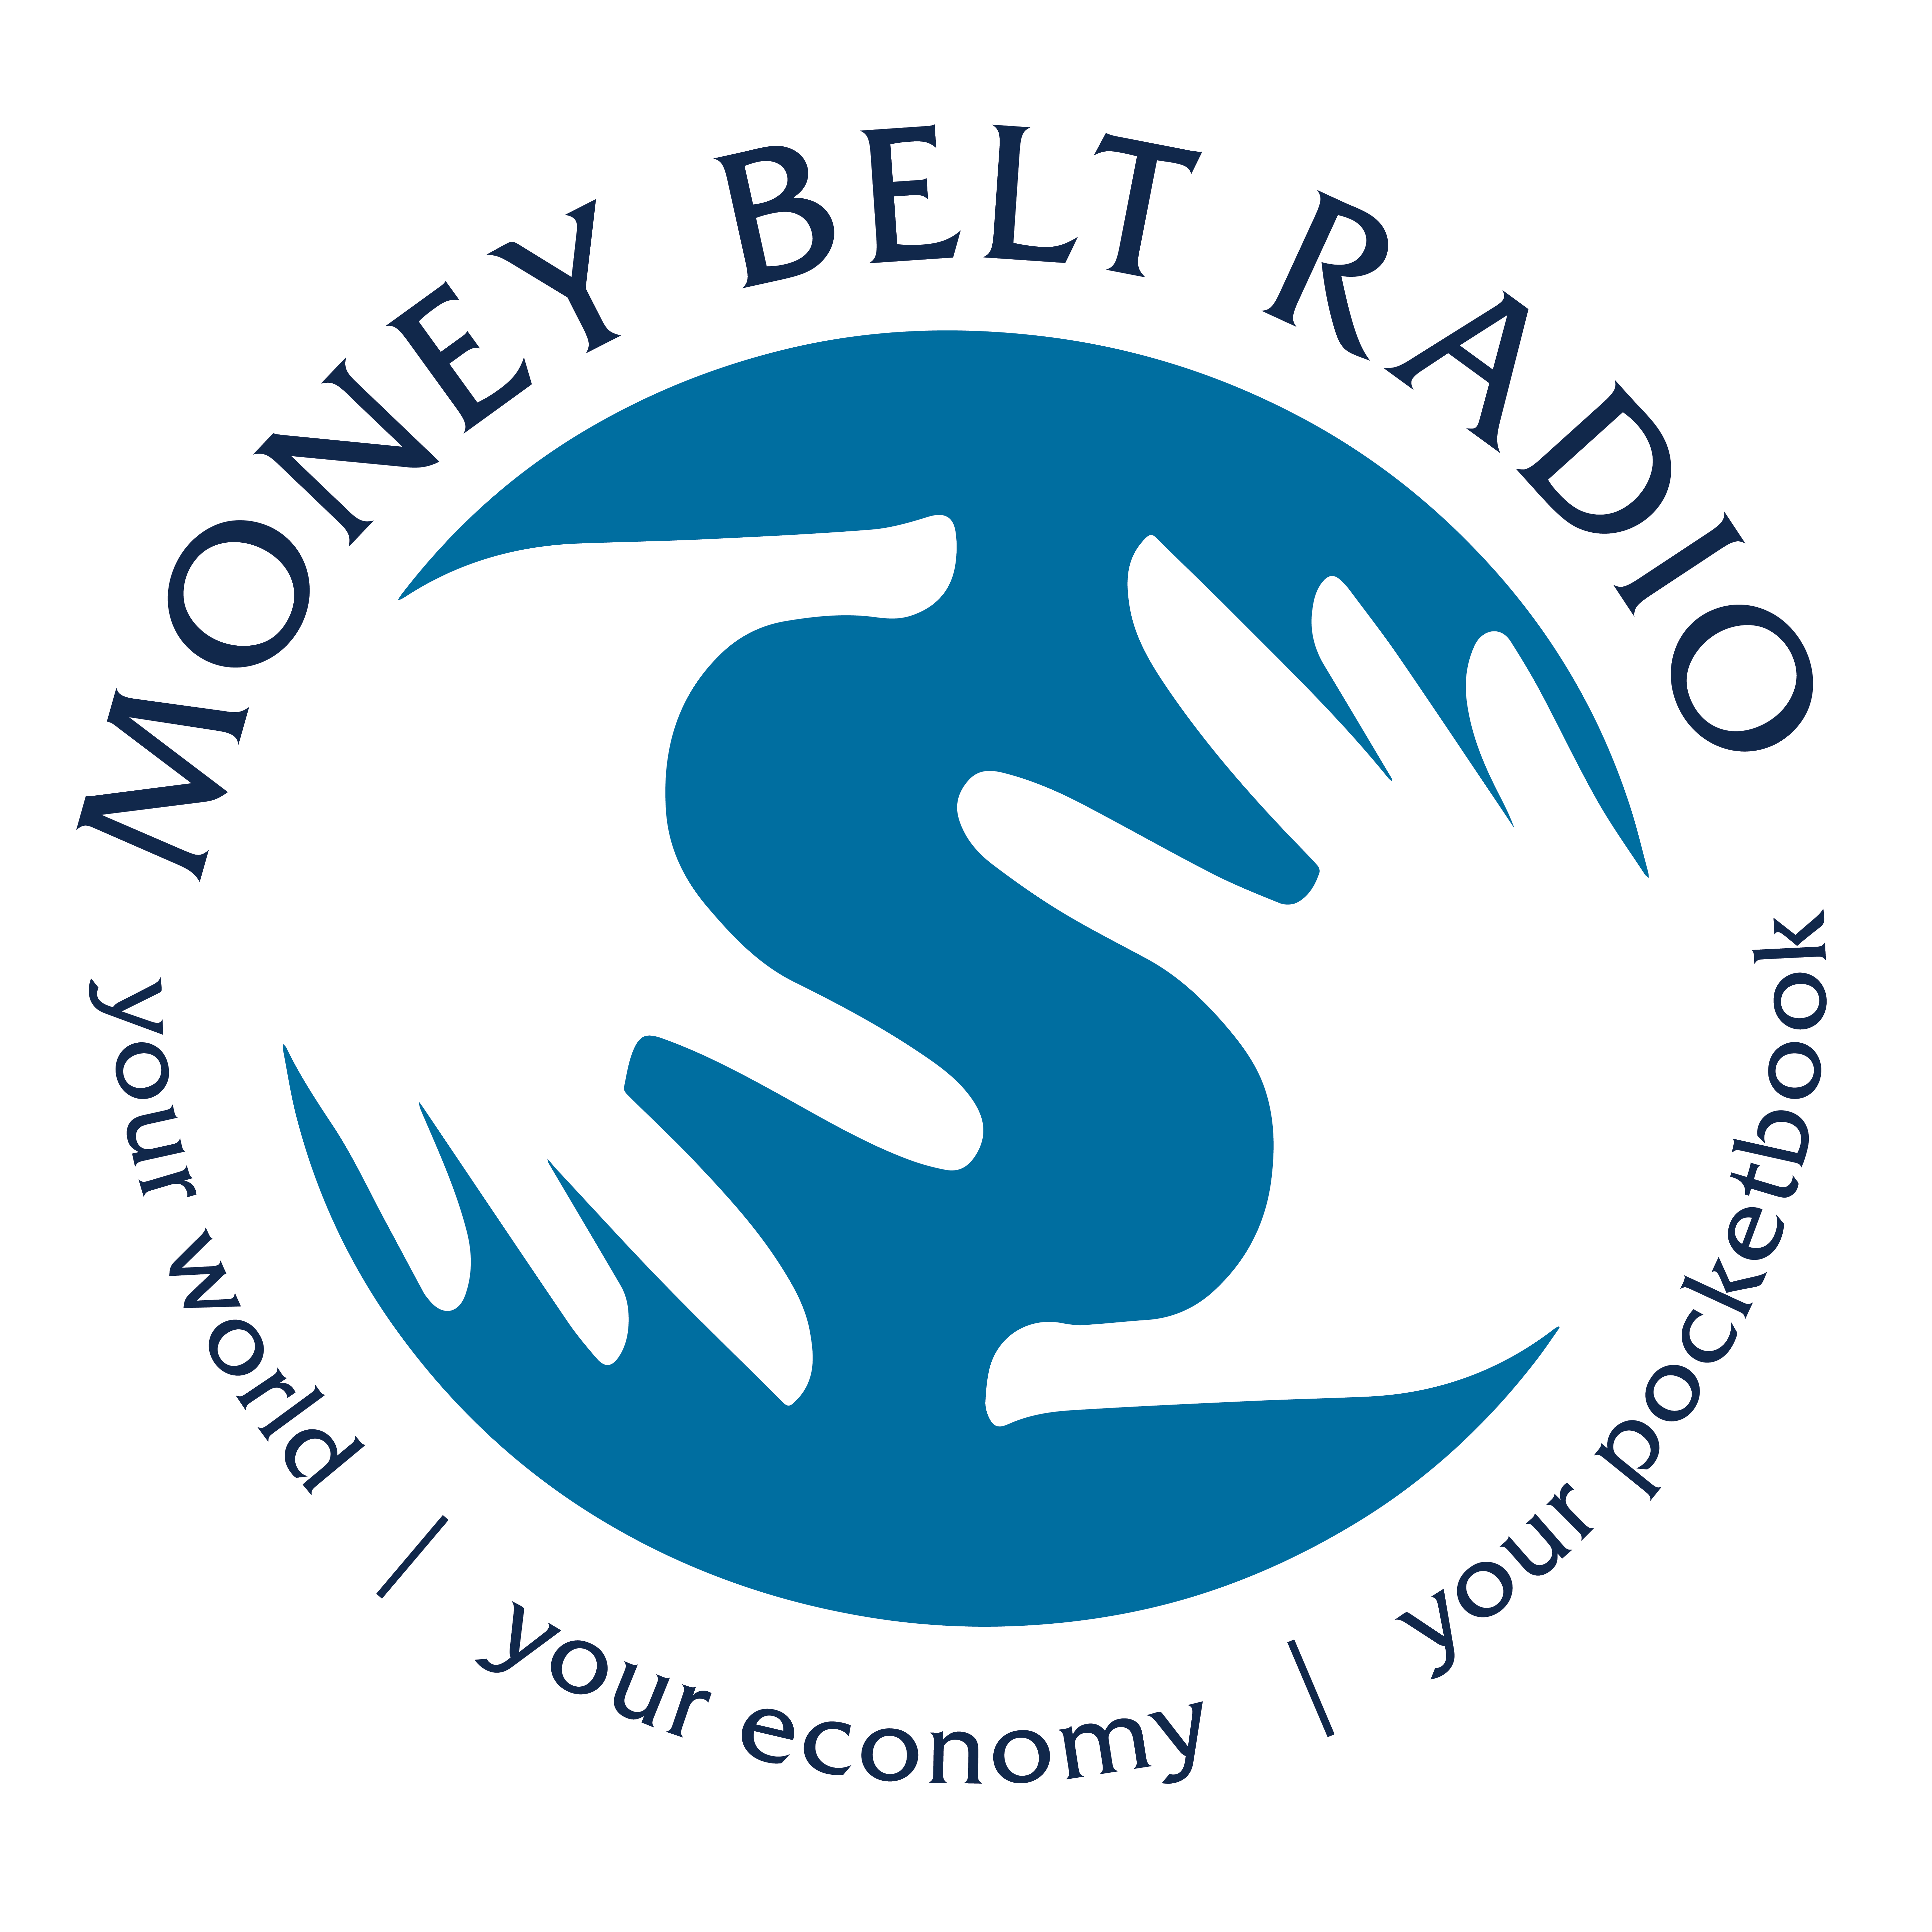 Money Belt Radio logo